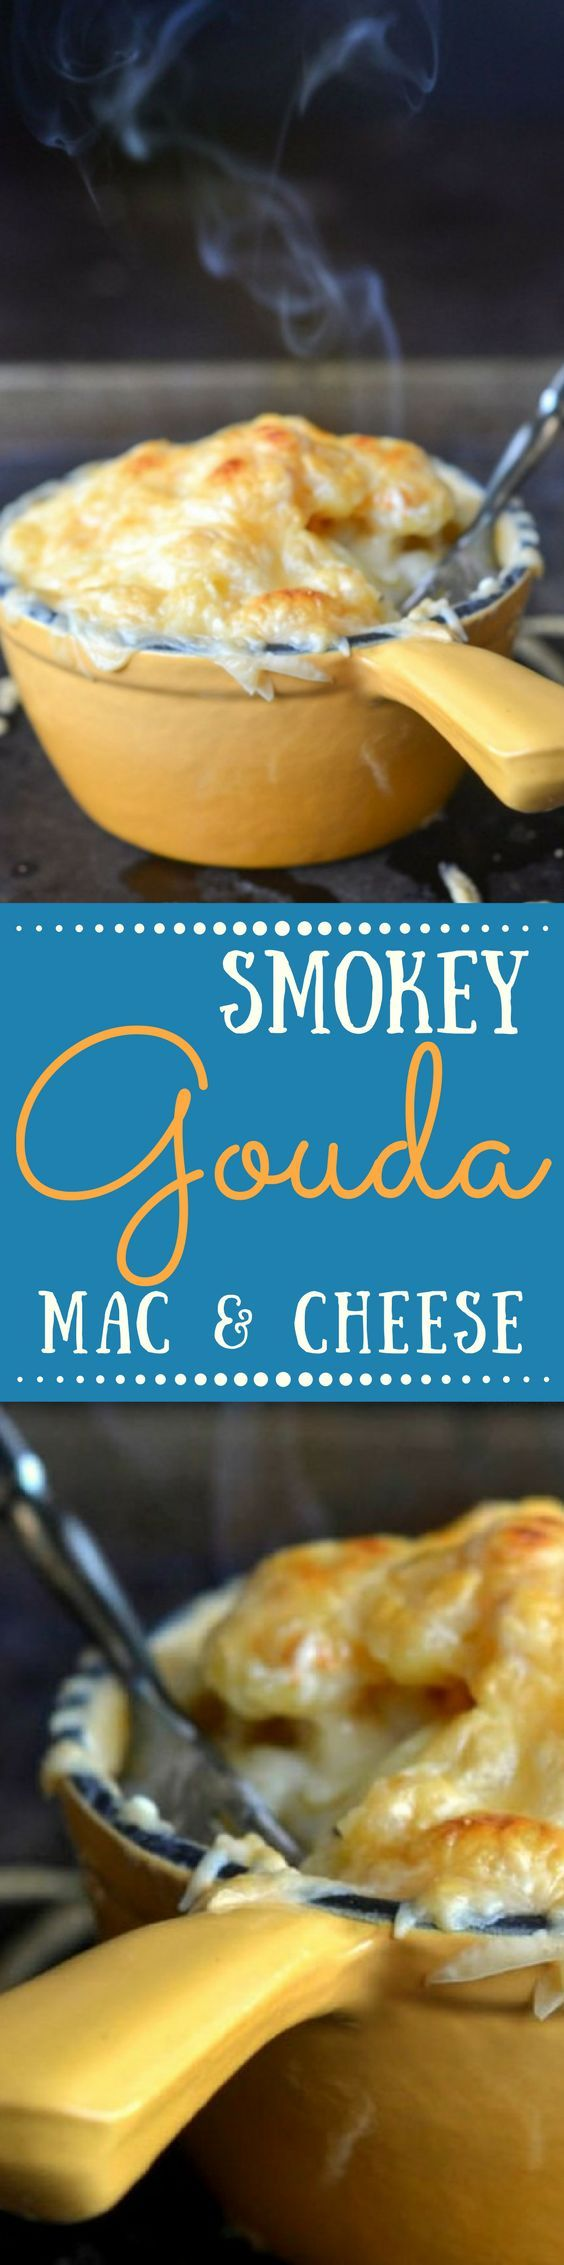 Smoked Gouda Mac & Cheese takes everybody's favorite comfort food up a notch ~ this easy and delicious meal can be on the table in under an hour! ~ theviewfromgreatisland.com